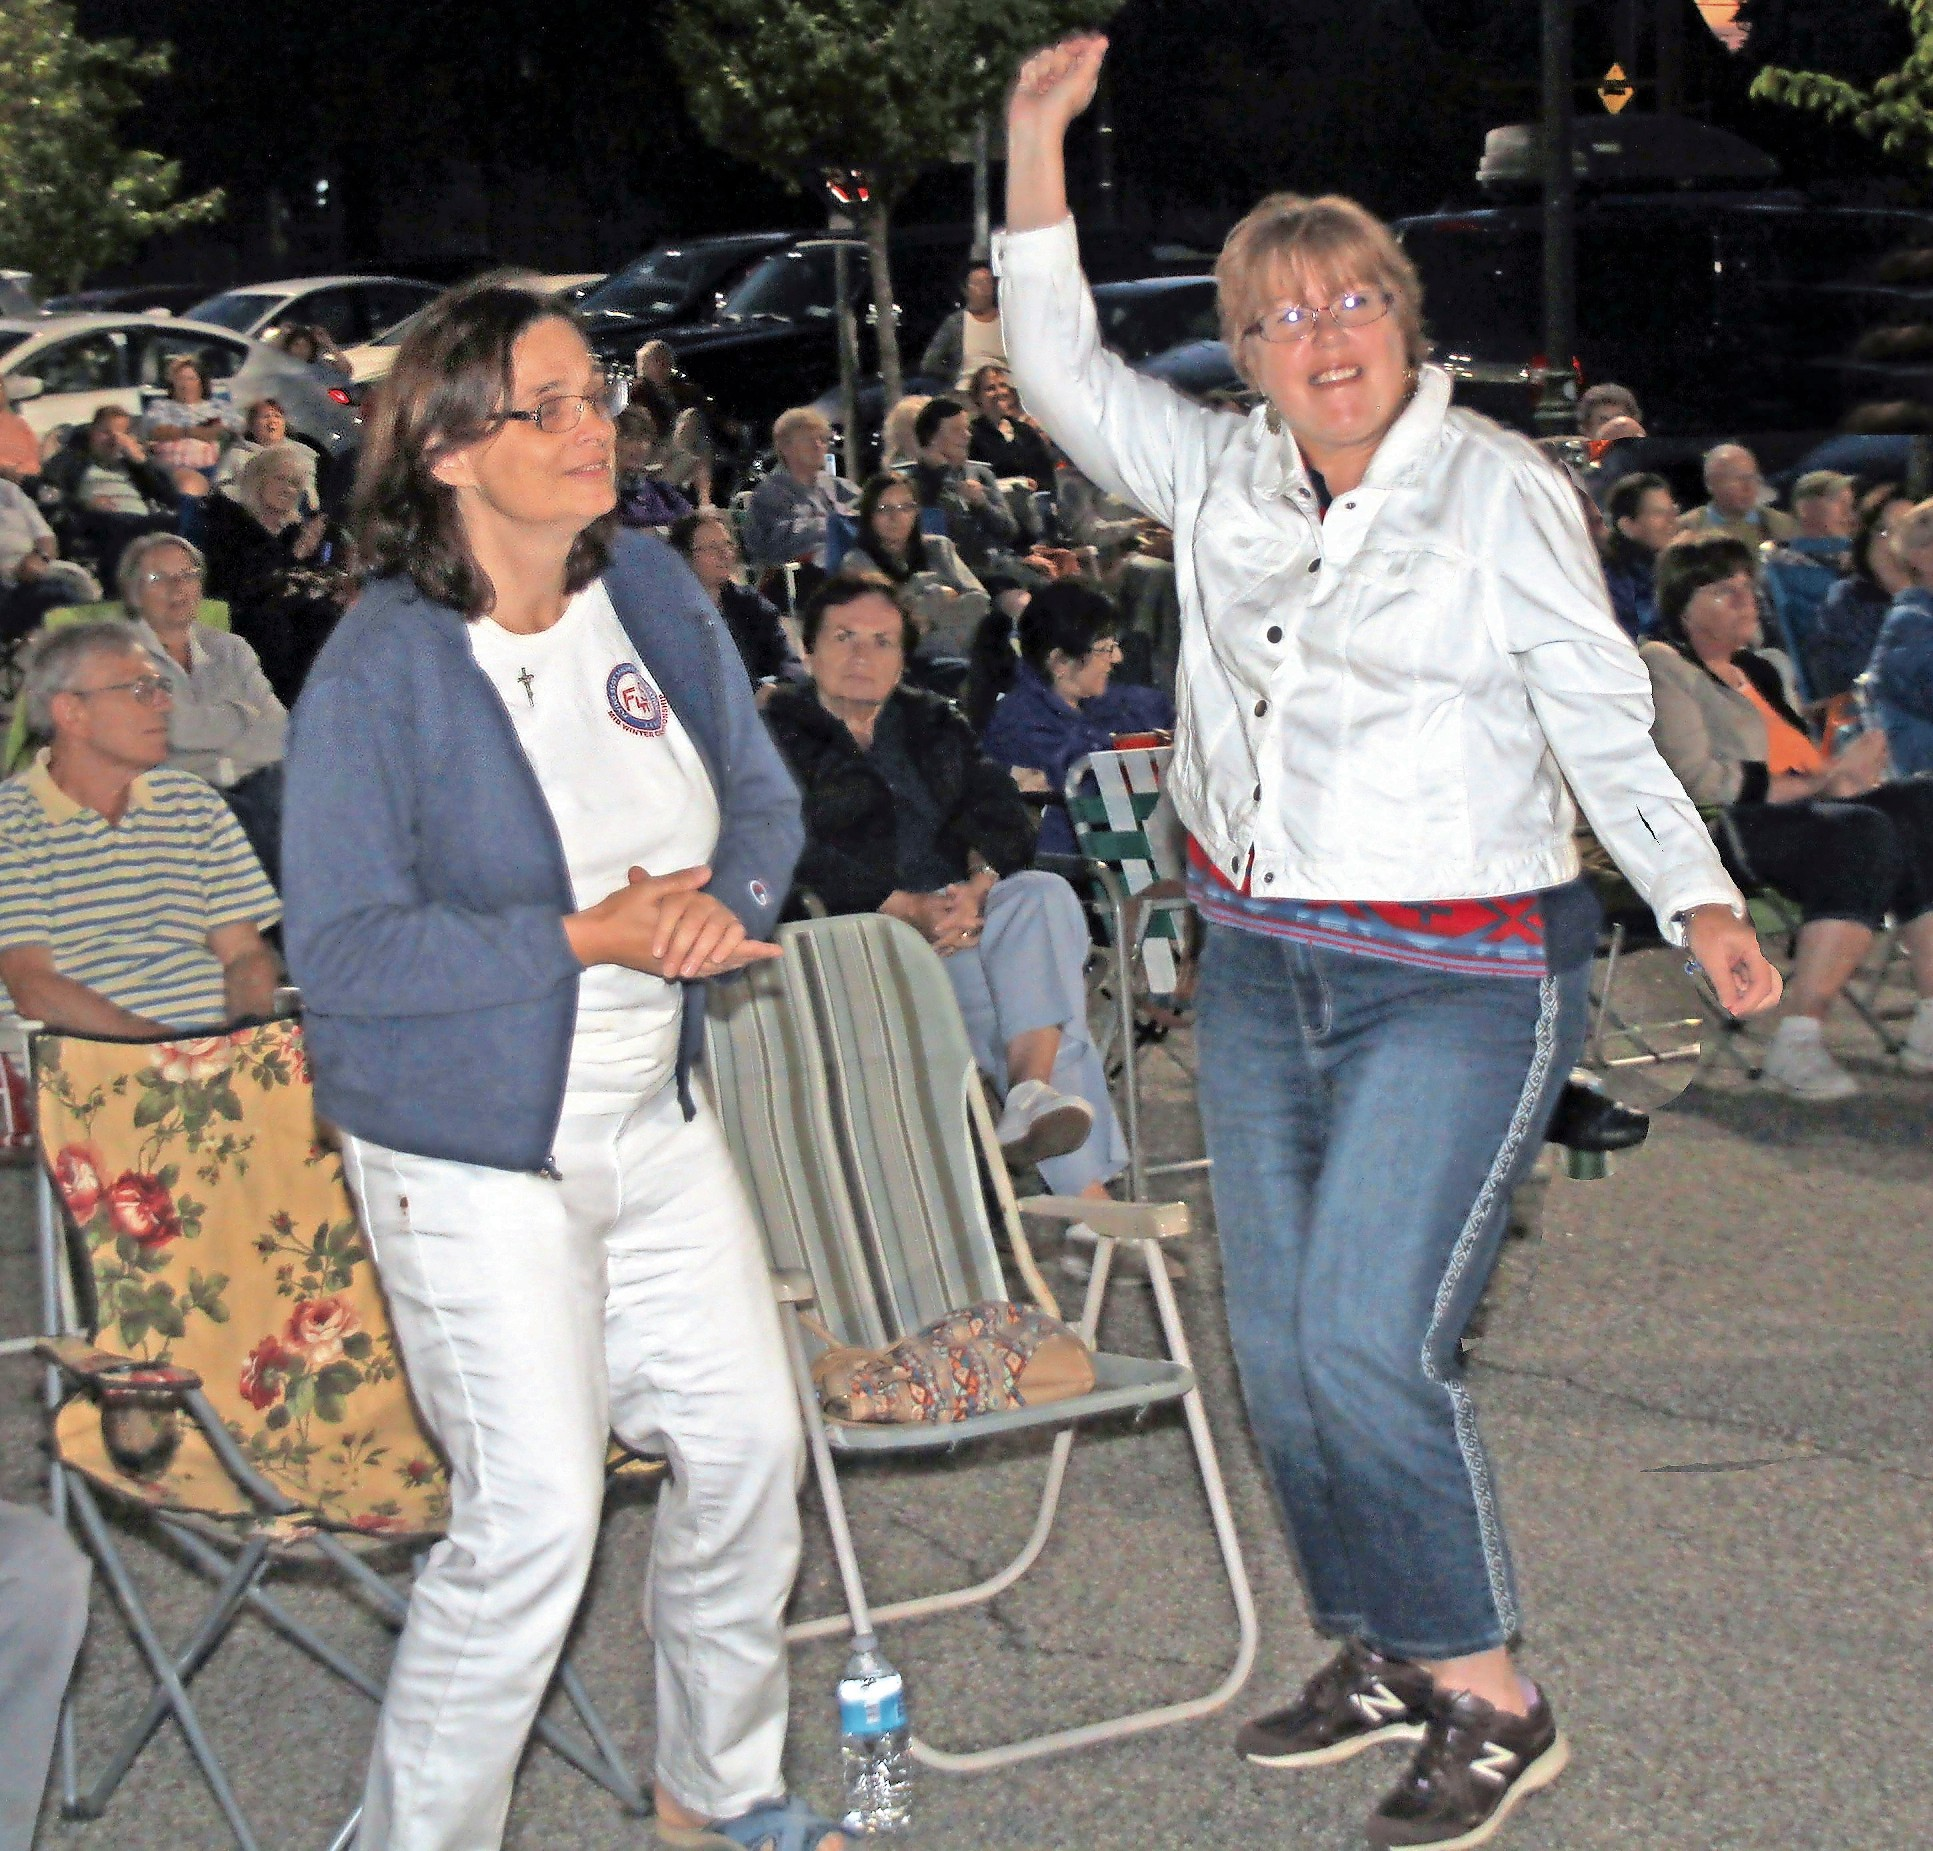 Andrea DiGregorio, left and Ann Von Werne danced to the music.